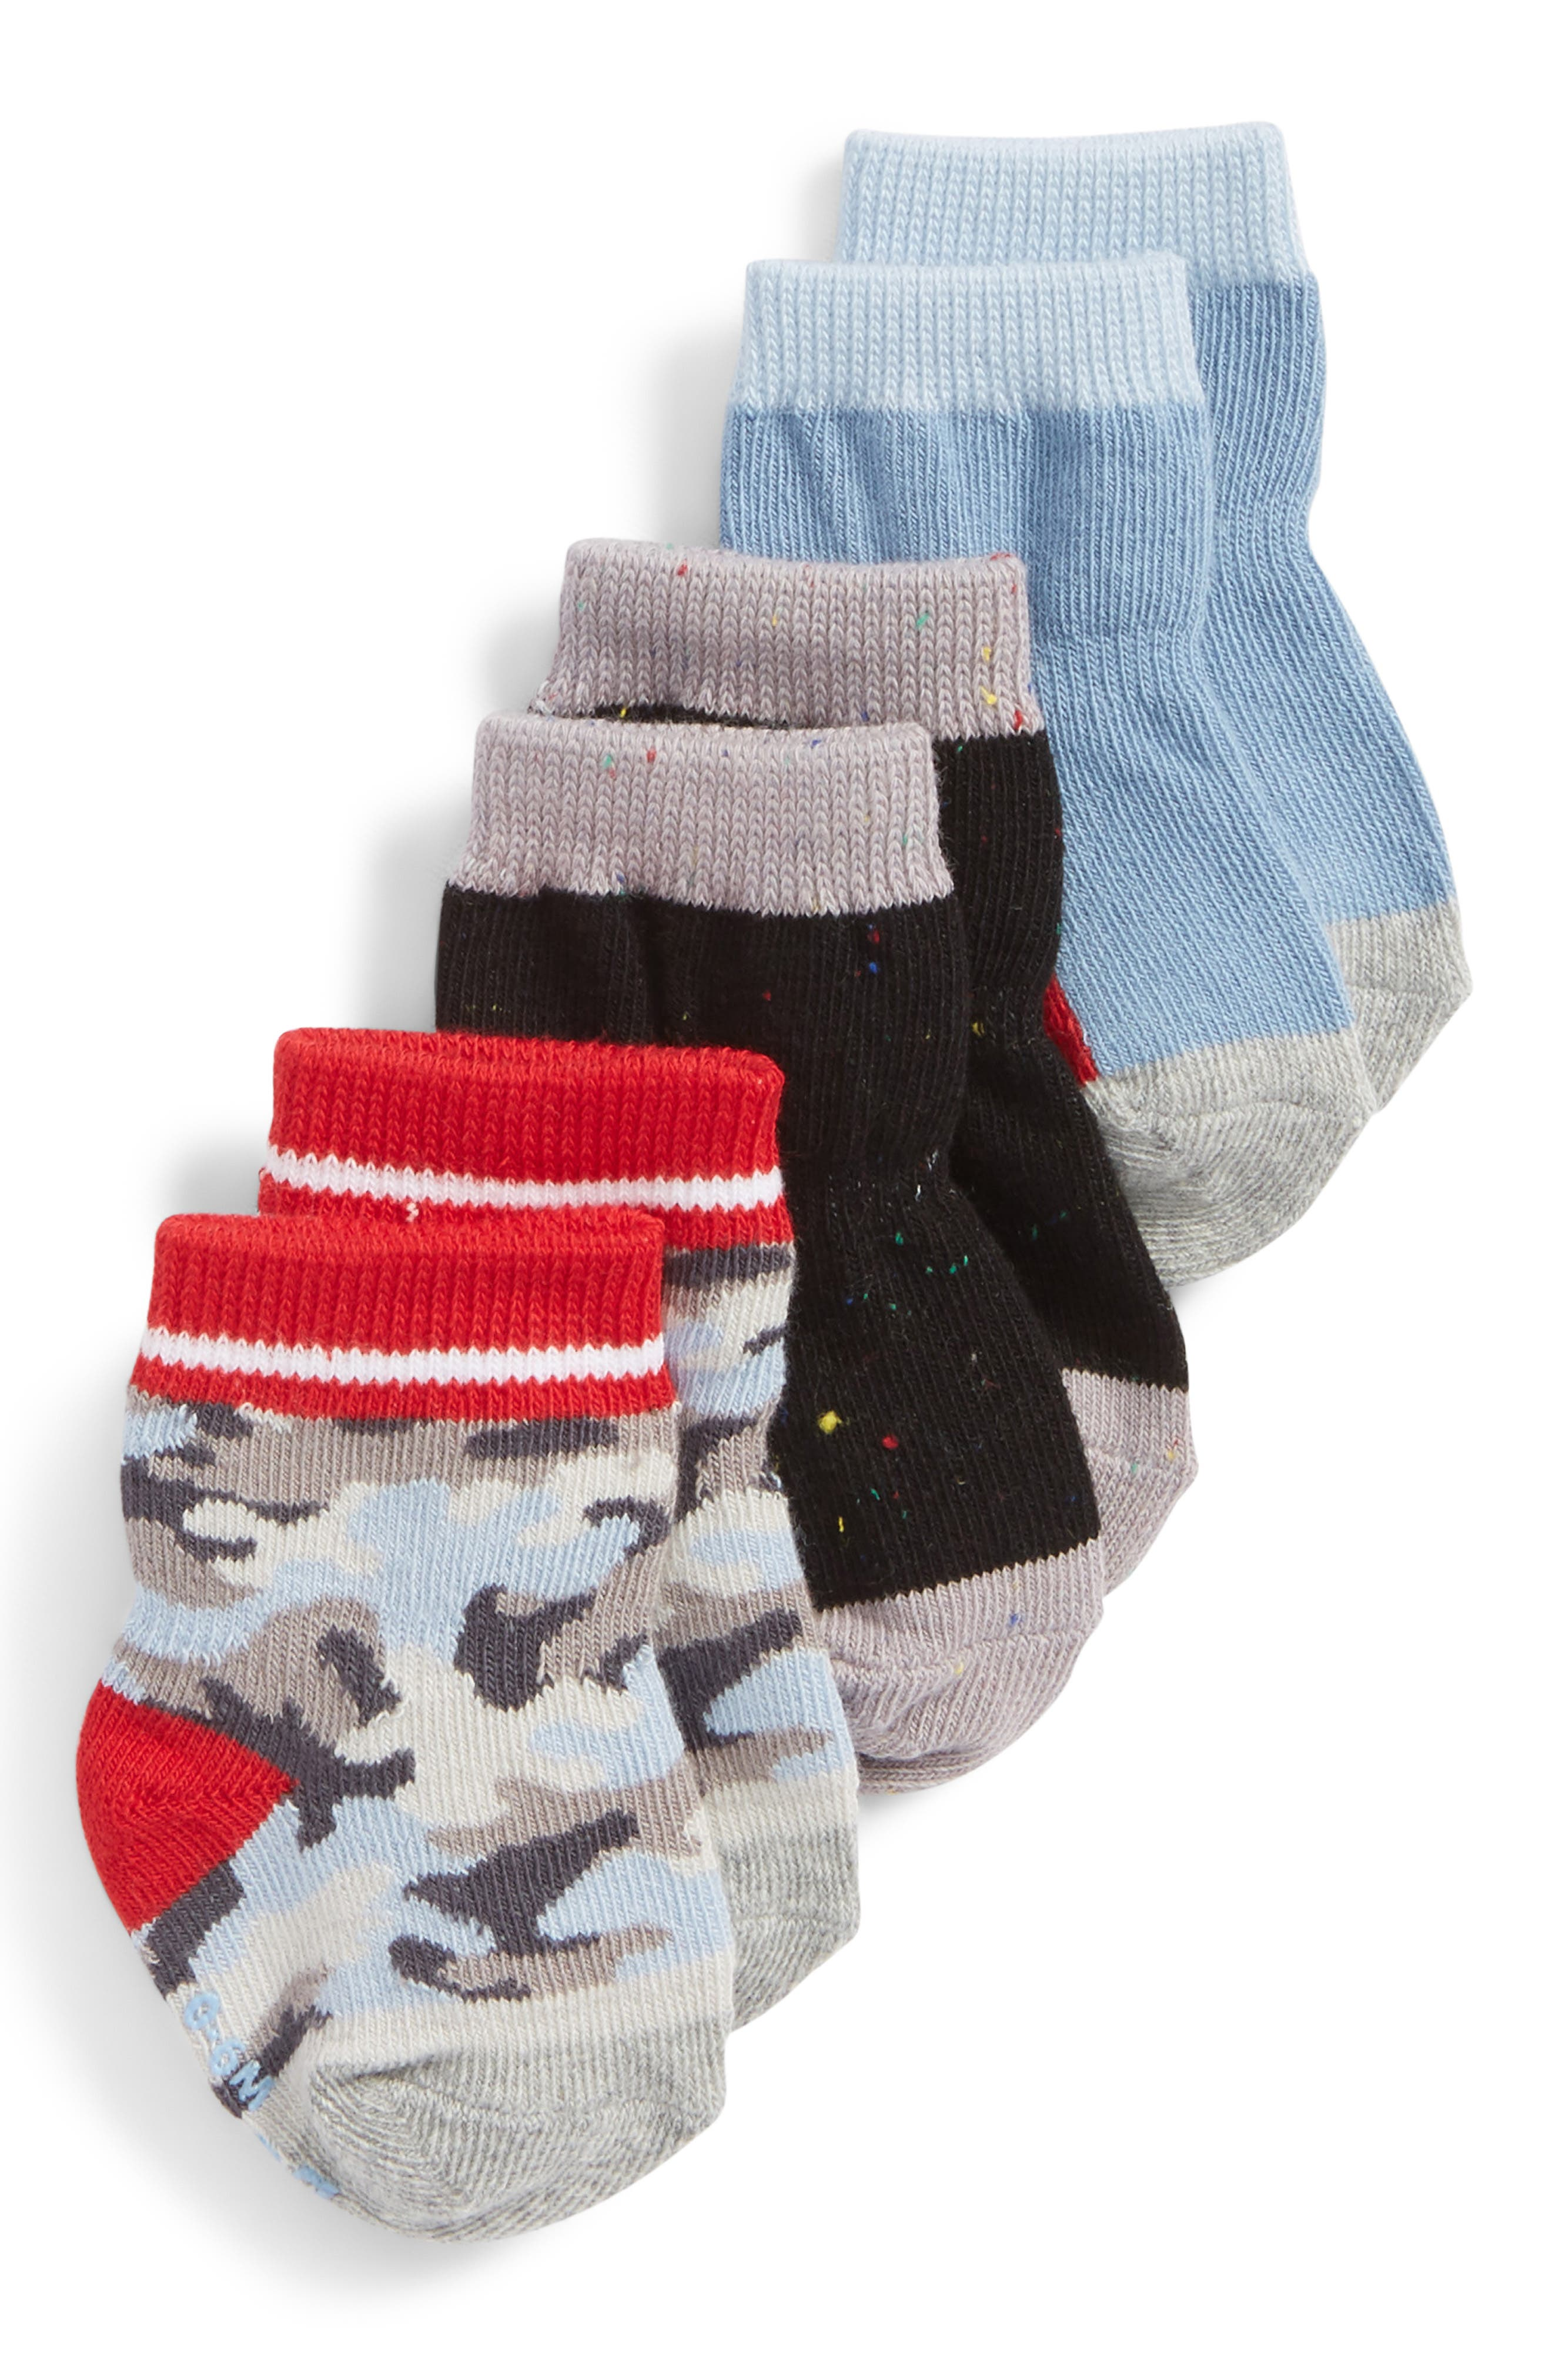 Camo 3-Pack Socks,                         Main,                         color, GRAY/ BLUE/ RED